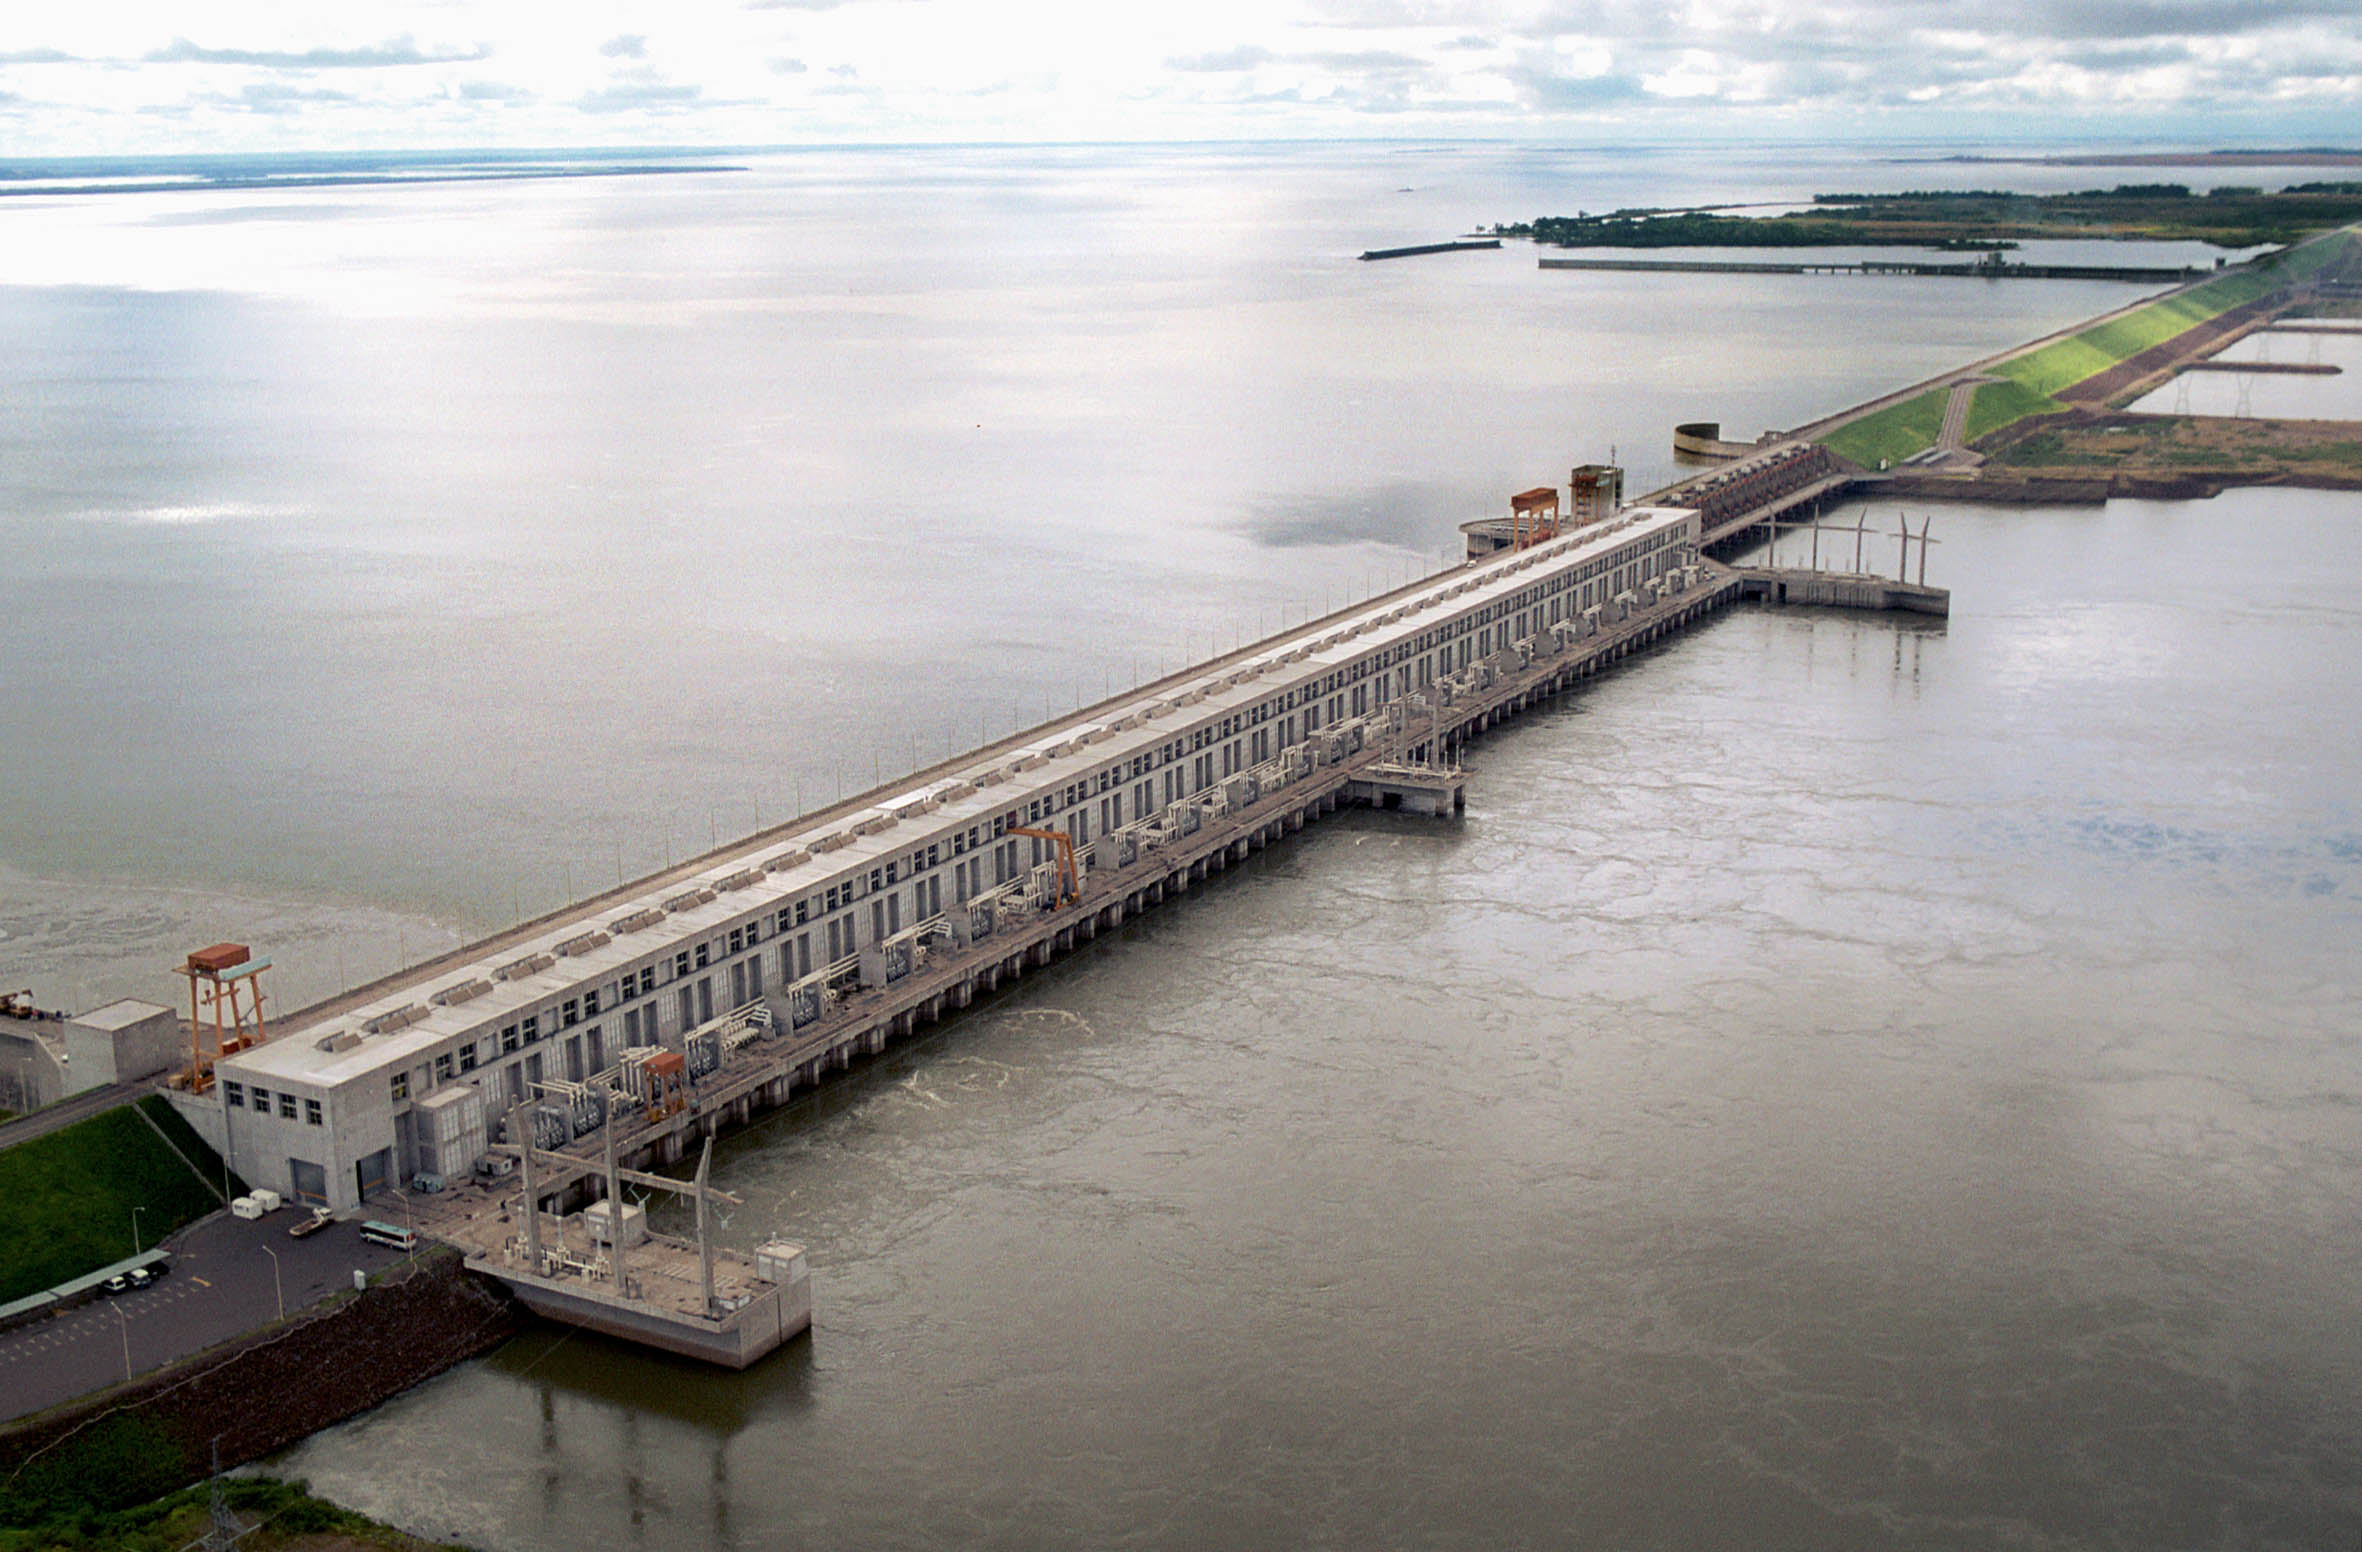 Yacyreta dam on the Parana river.